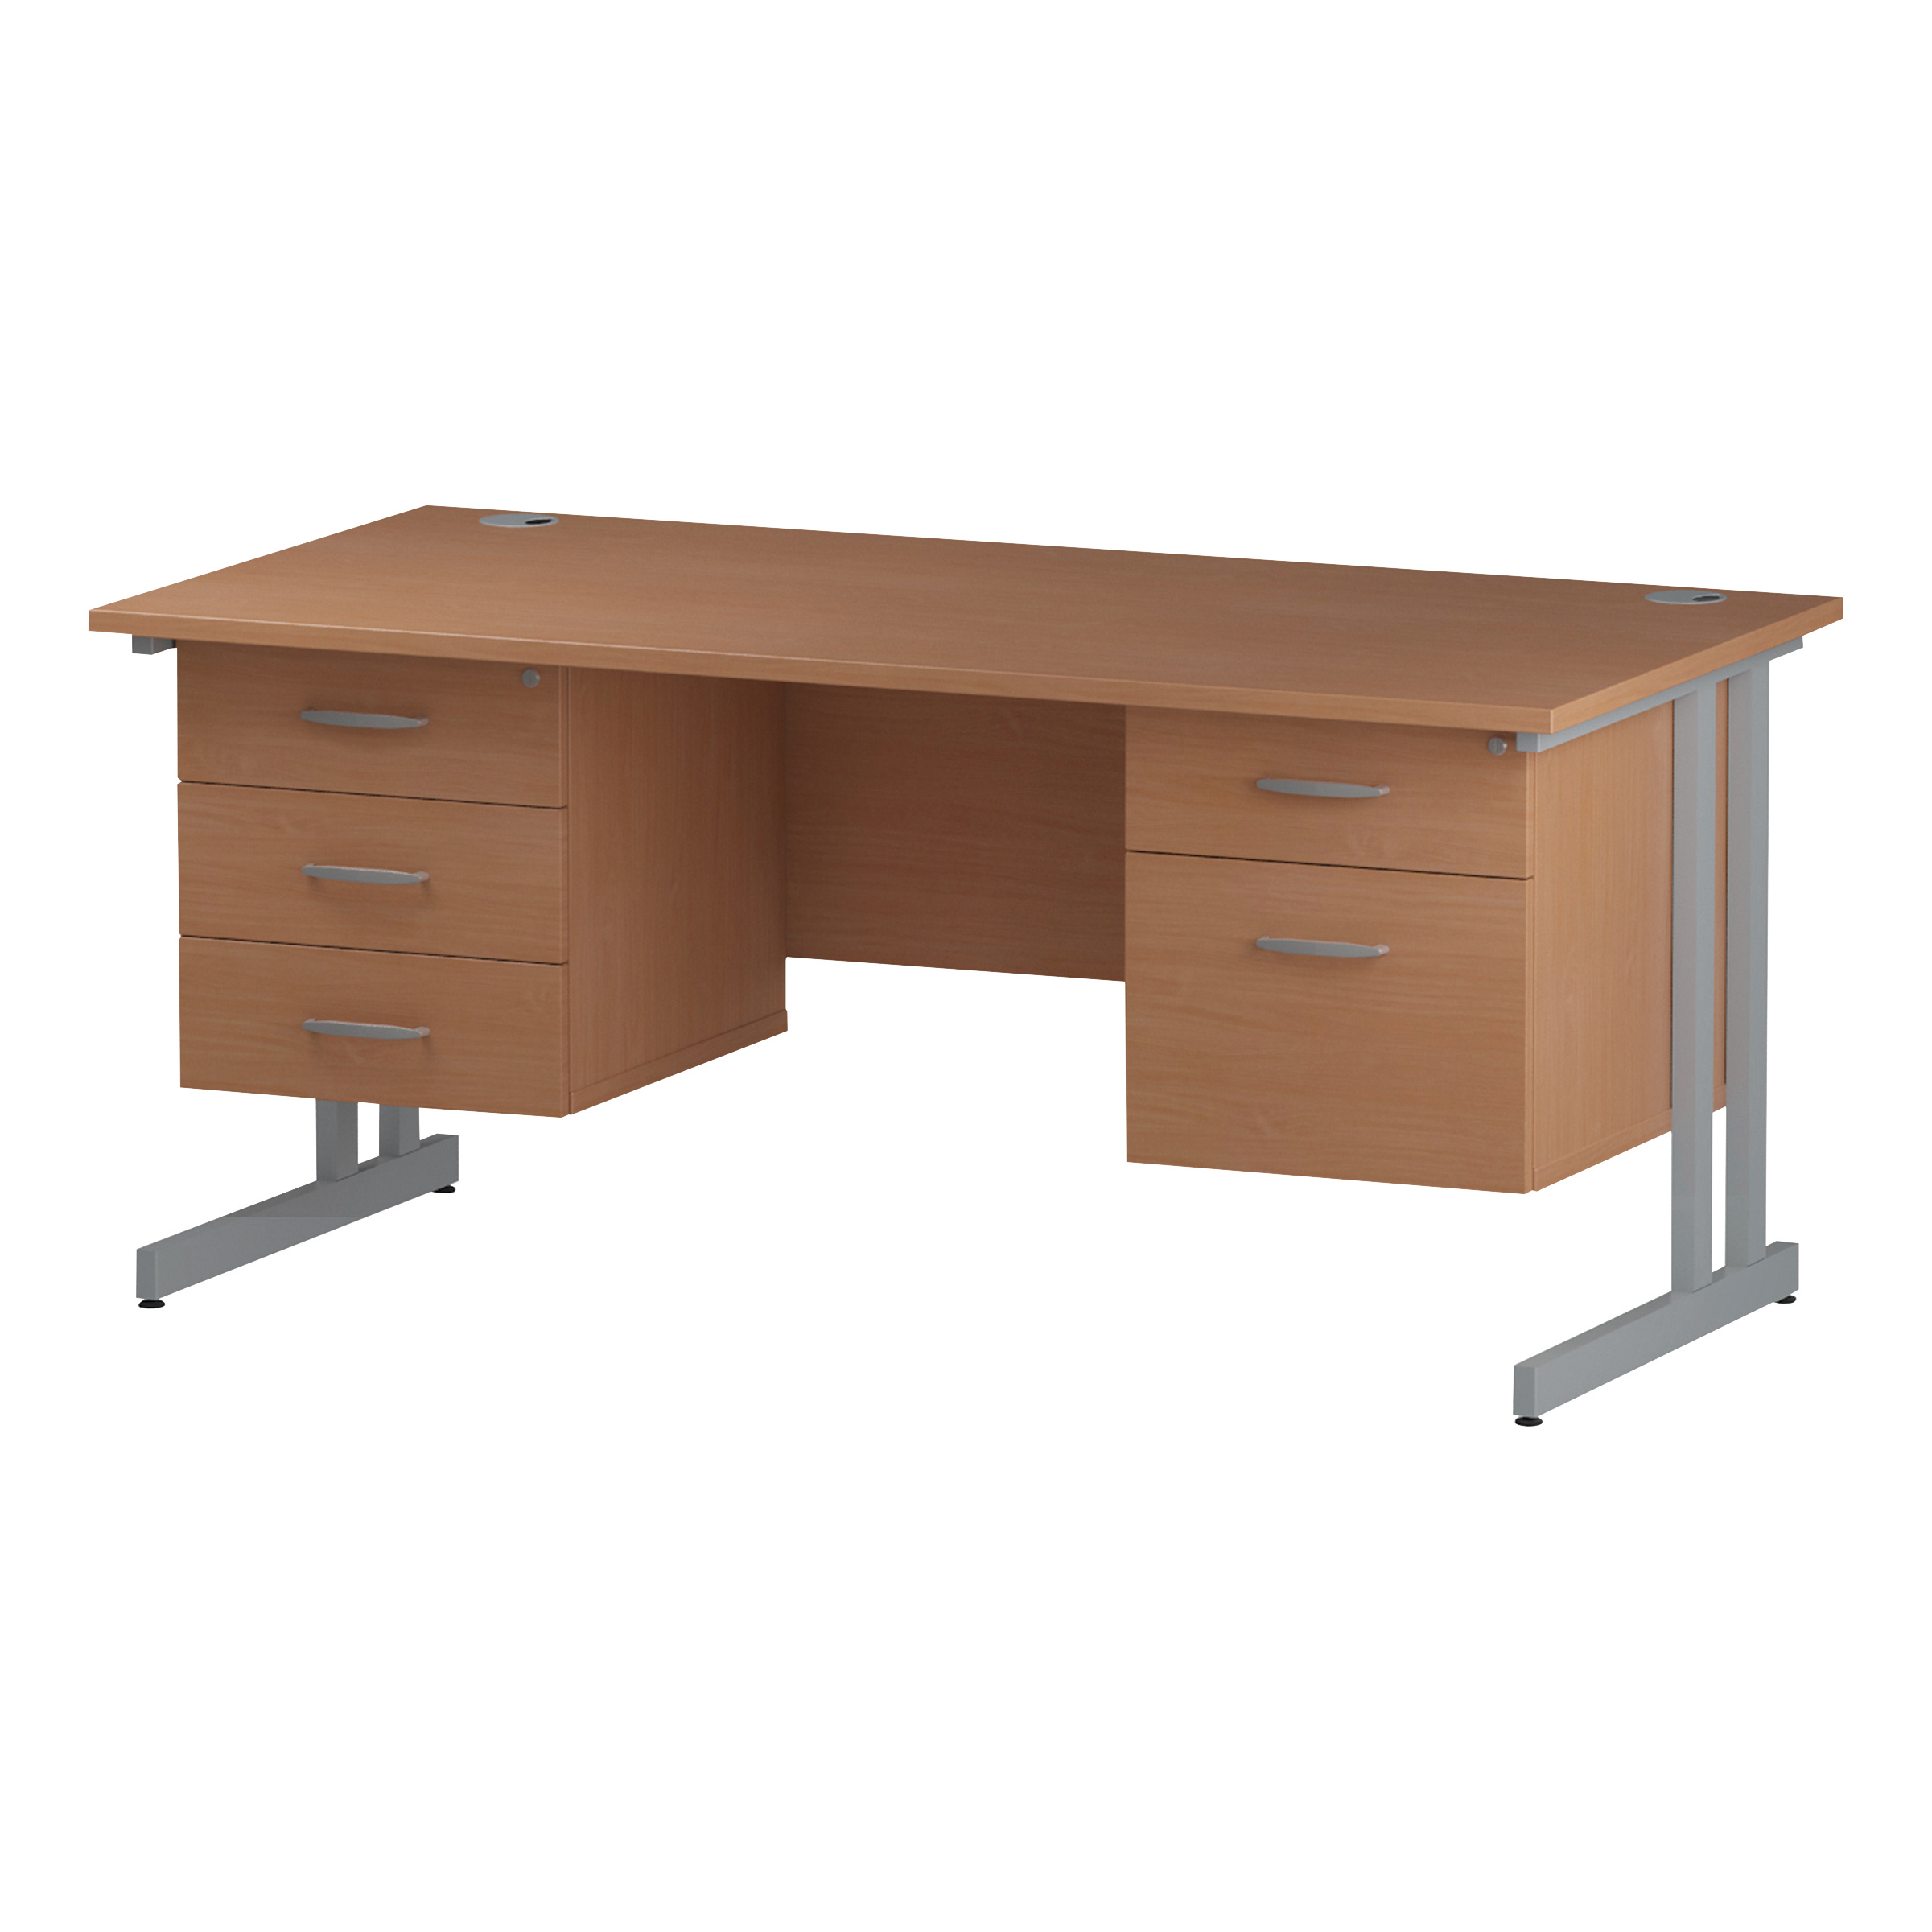 Trexus Rectangular Desk Silver Cantilever Leg 1600x800mm Double Fixed Ped 2&3 Drawers Beech Ref I001722